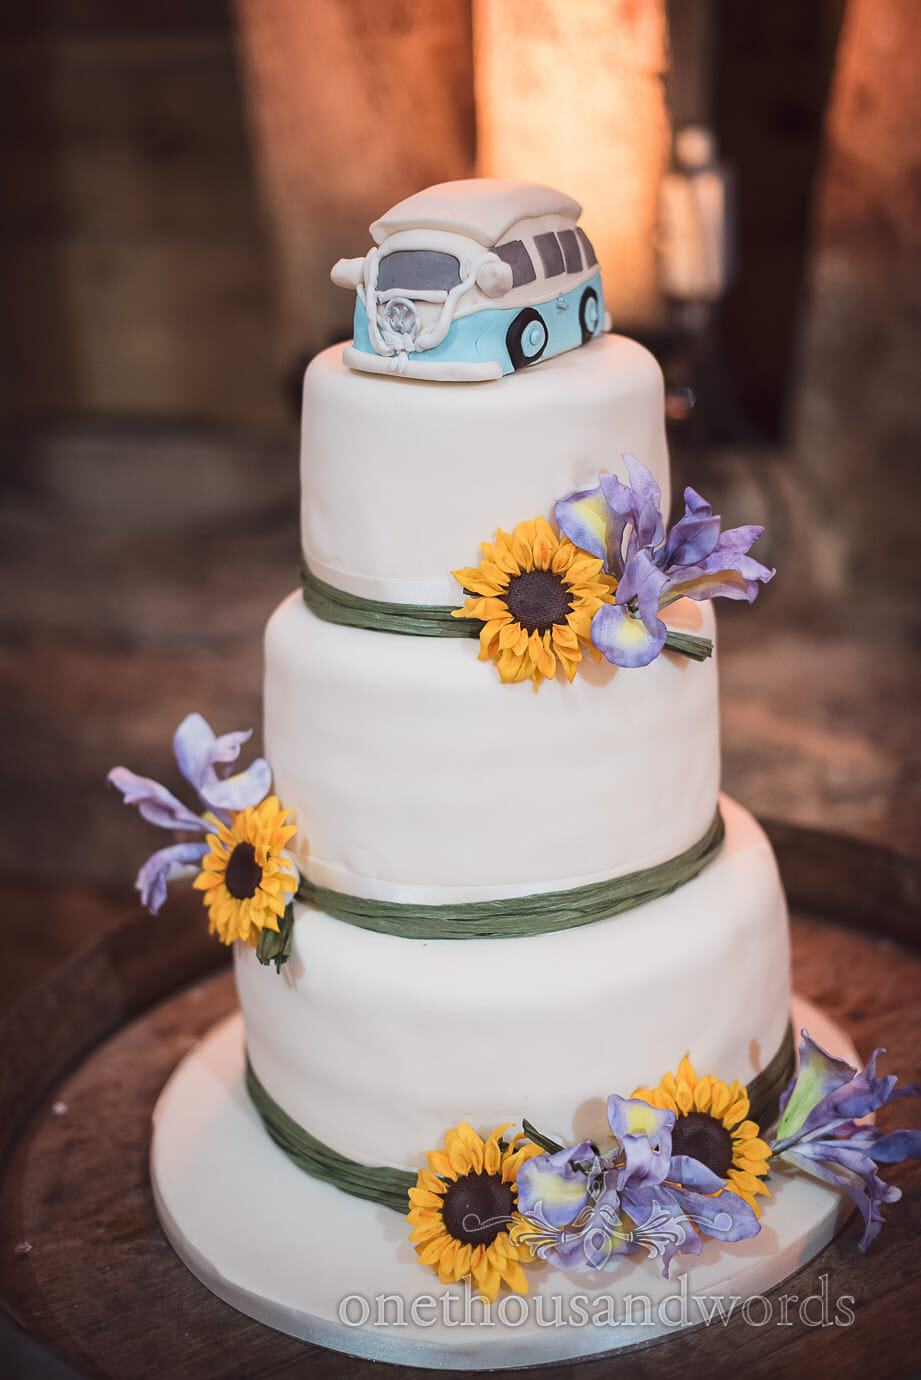 Three tier wedding cake with sunflower and VB bus decoration